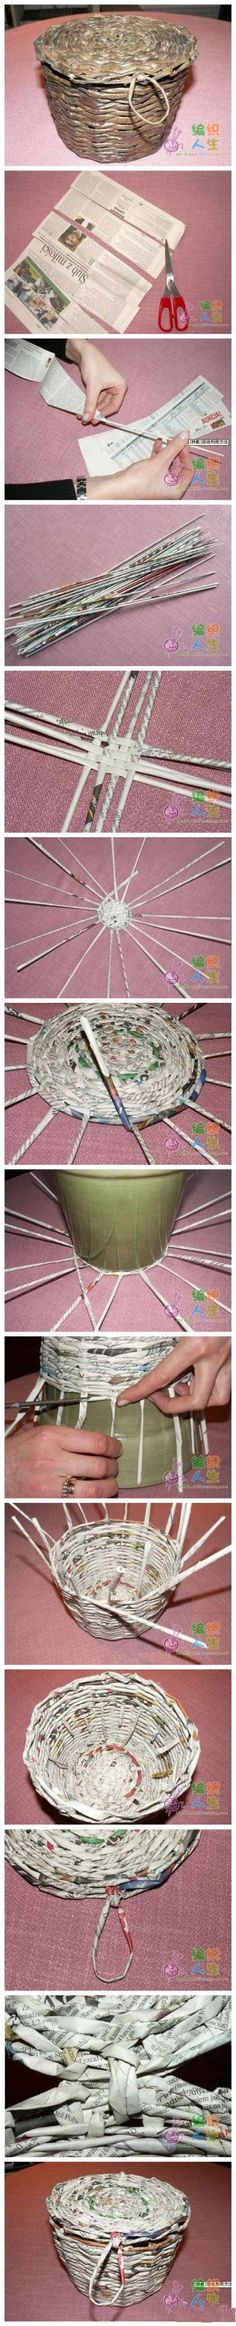 DIY Recycled Paper Magazine / Newspaper Basket Weaving Tutorial